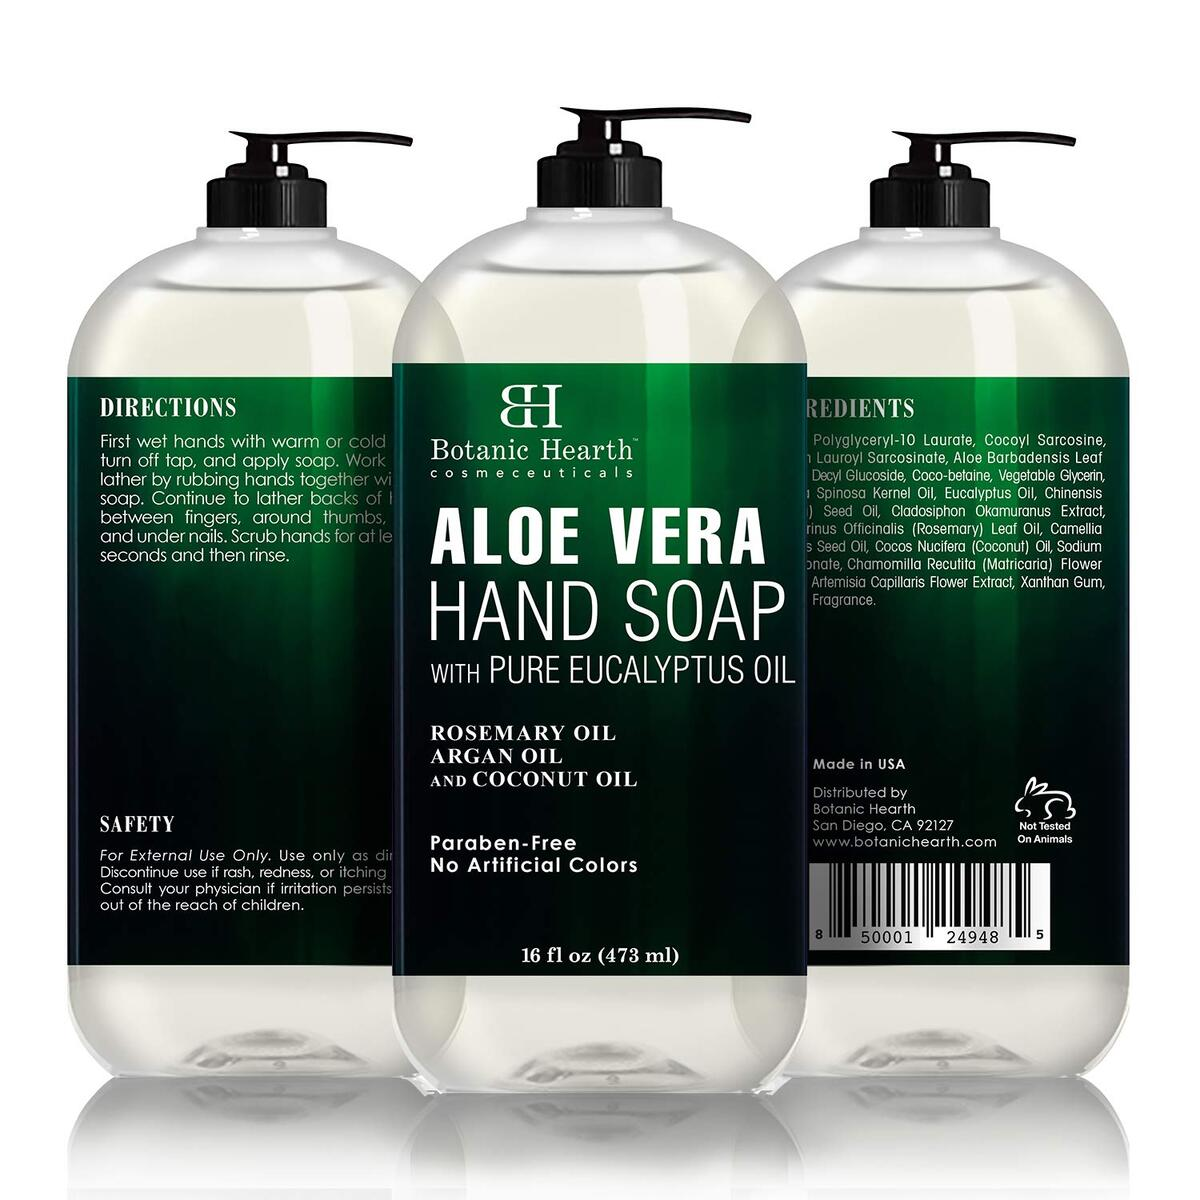 Aloe Vera Hand Soap with Eucalyptus Essential Oil - Liquid Hand Wash for Cleansing, Moisturizing, and Nourishing Hand & Body, 16 fl oz